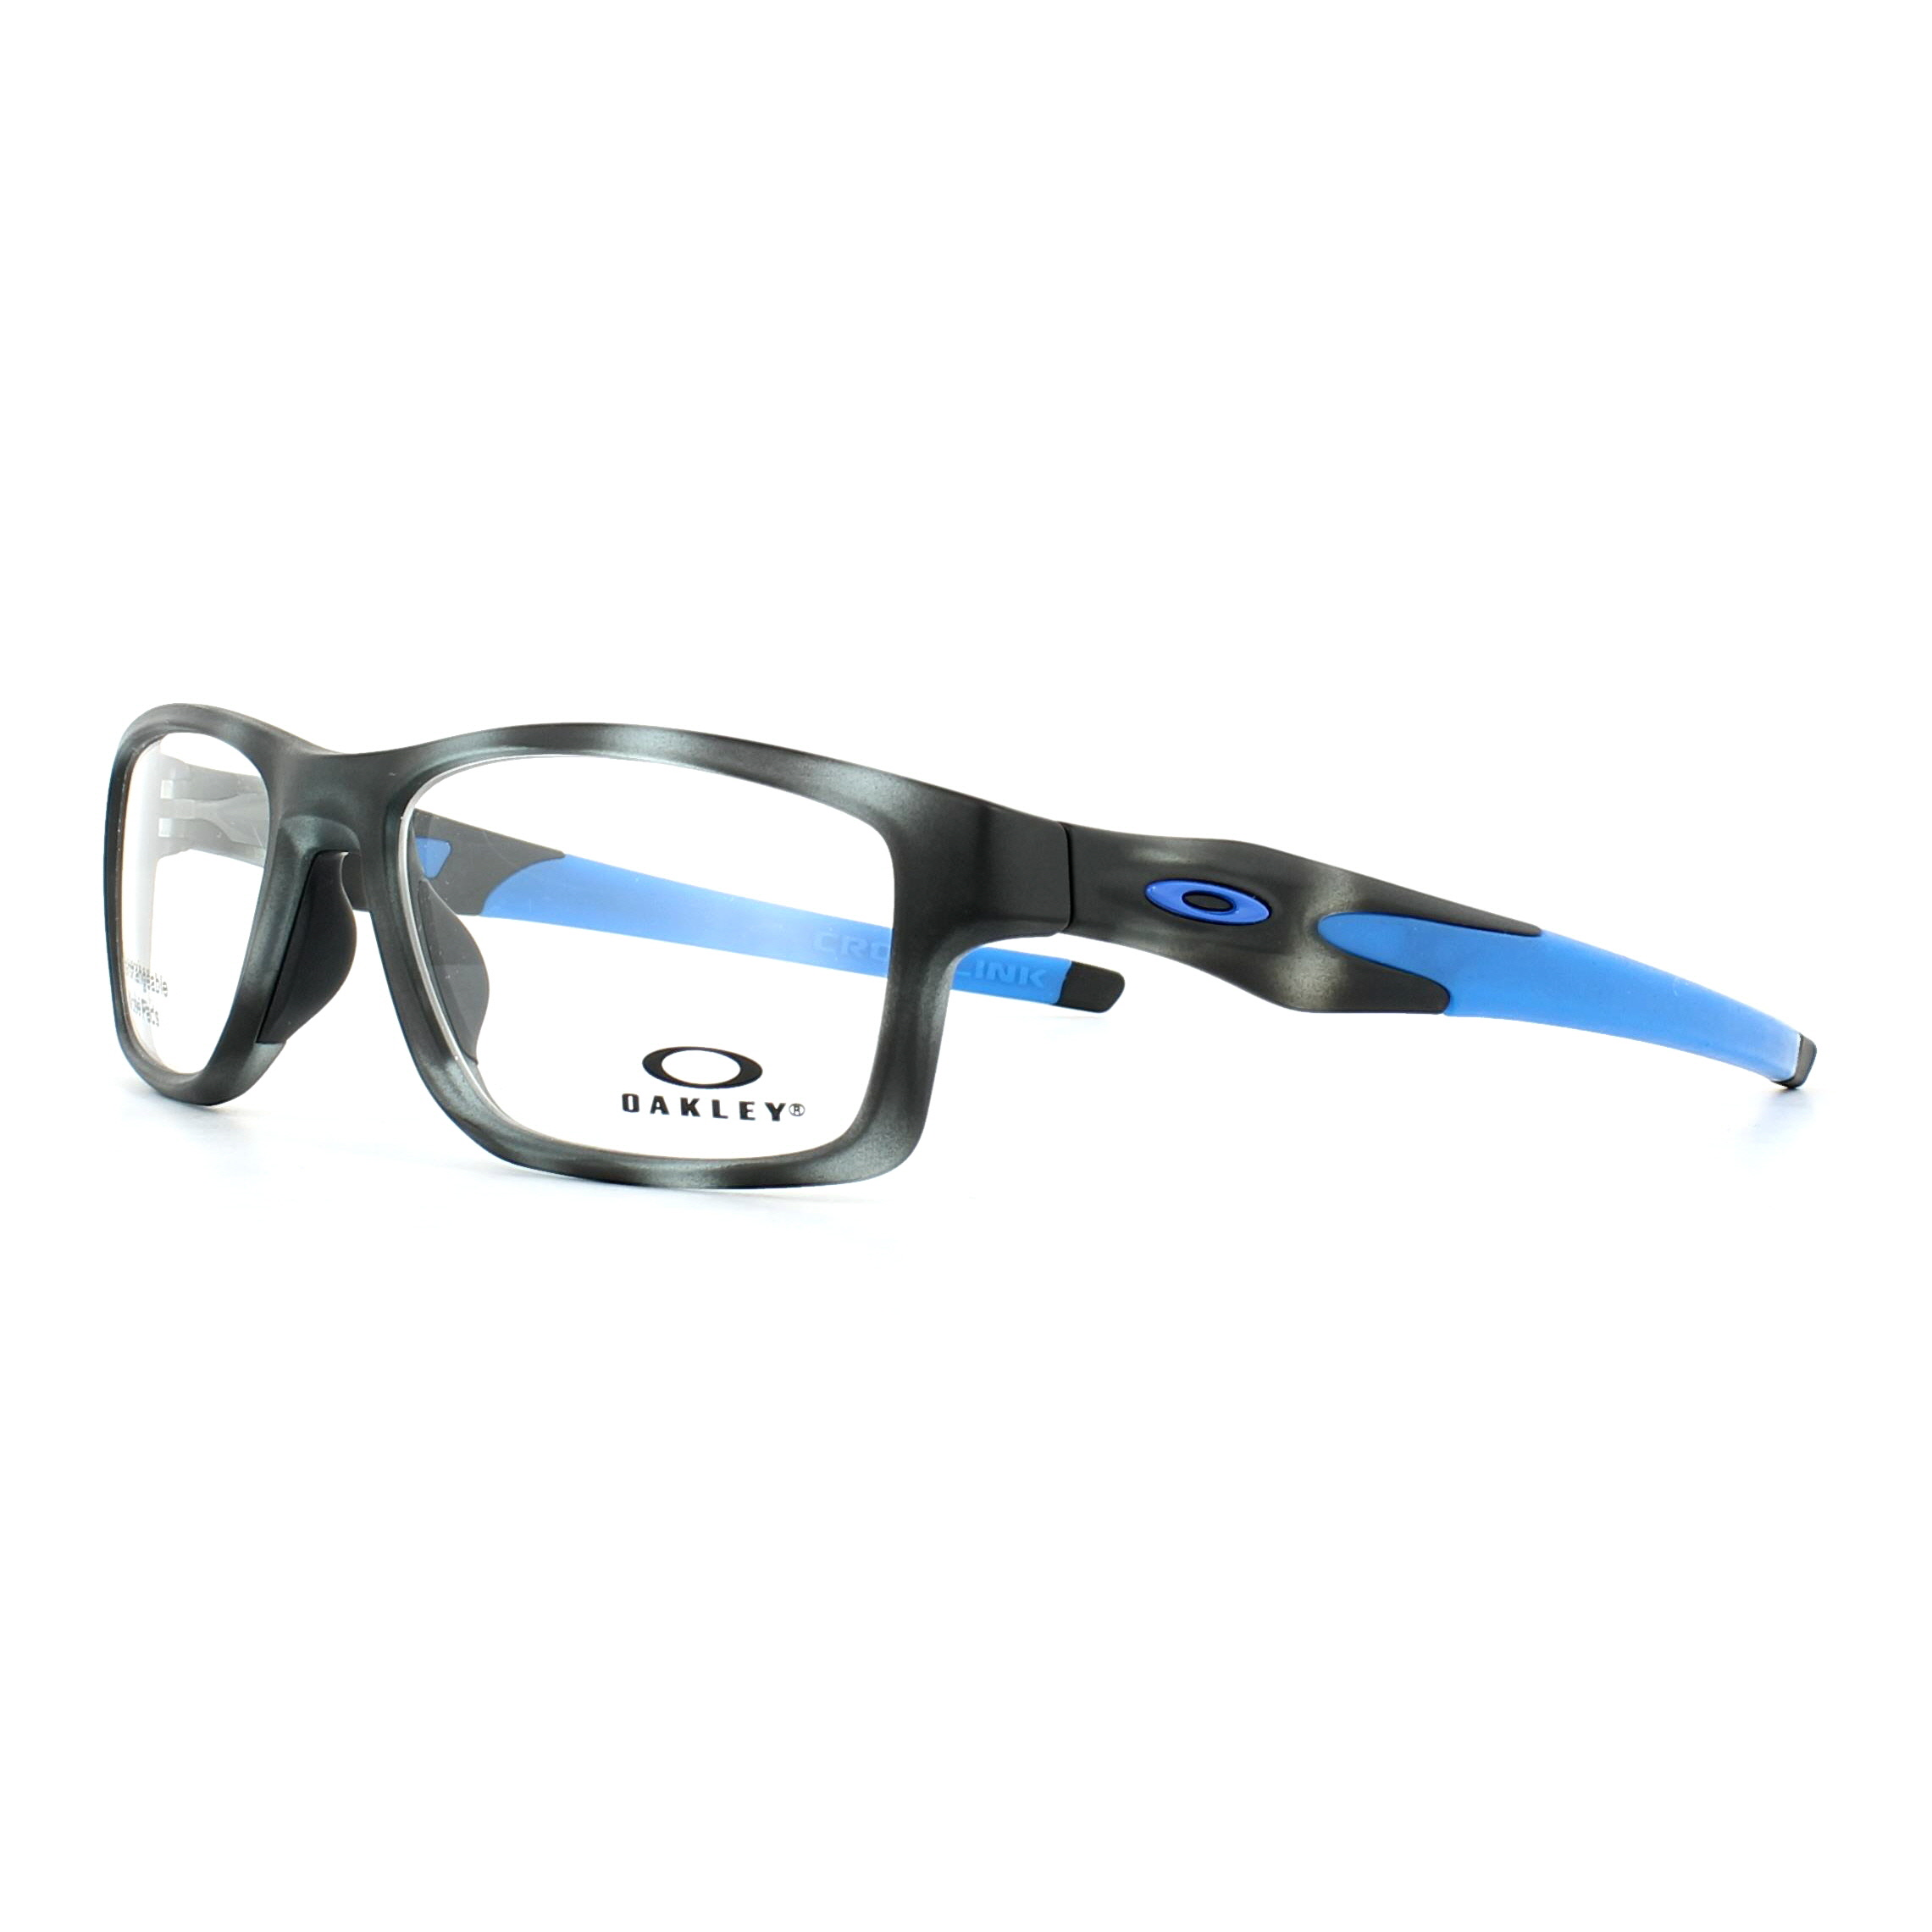 c3889263c7 Sentinel Oakley Glasses Frames Crosslink Trubridge OX8090-06 Matt Grey  Tortoise 55mm Mens